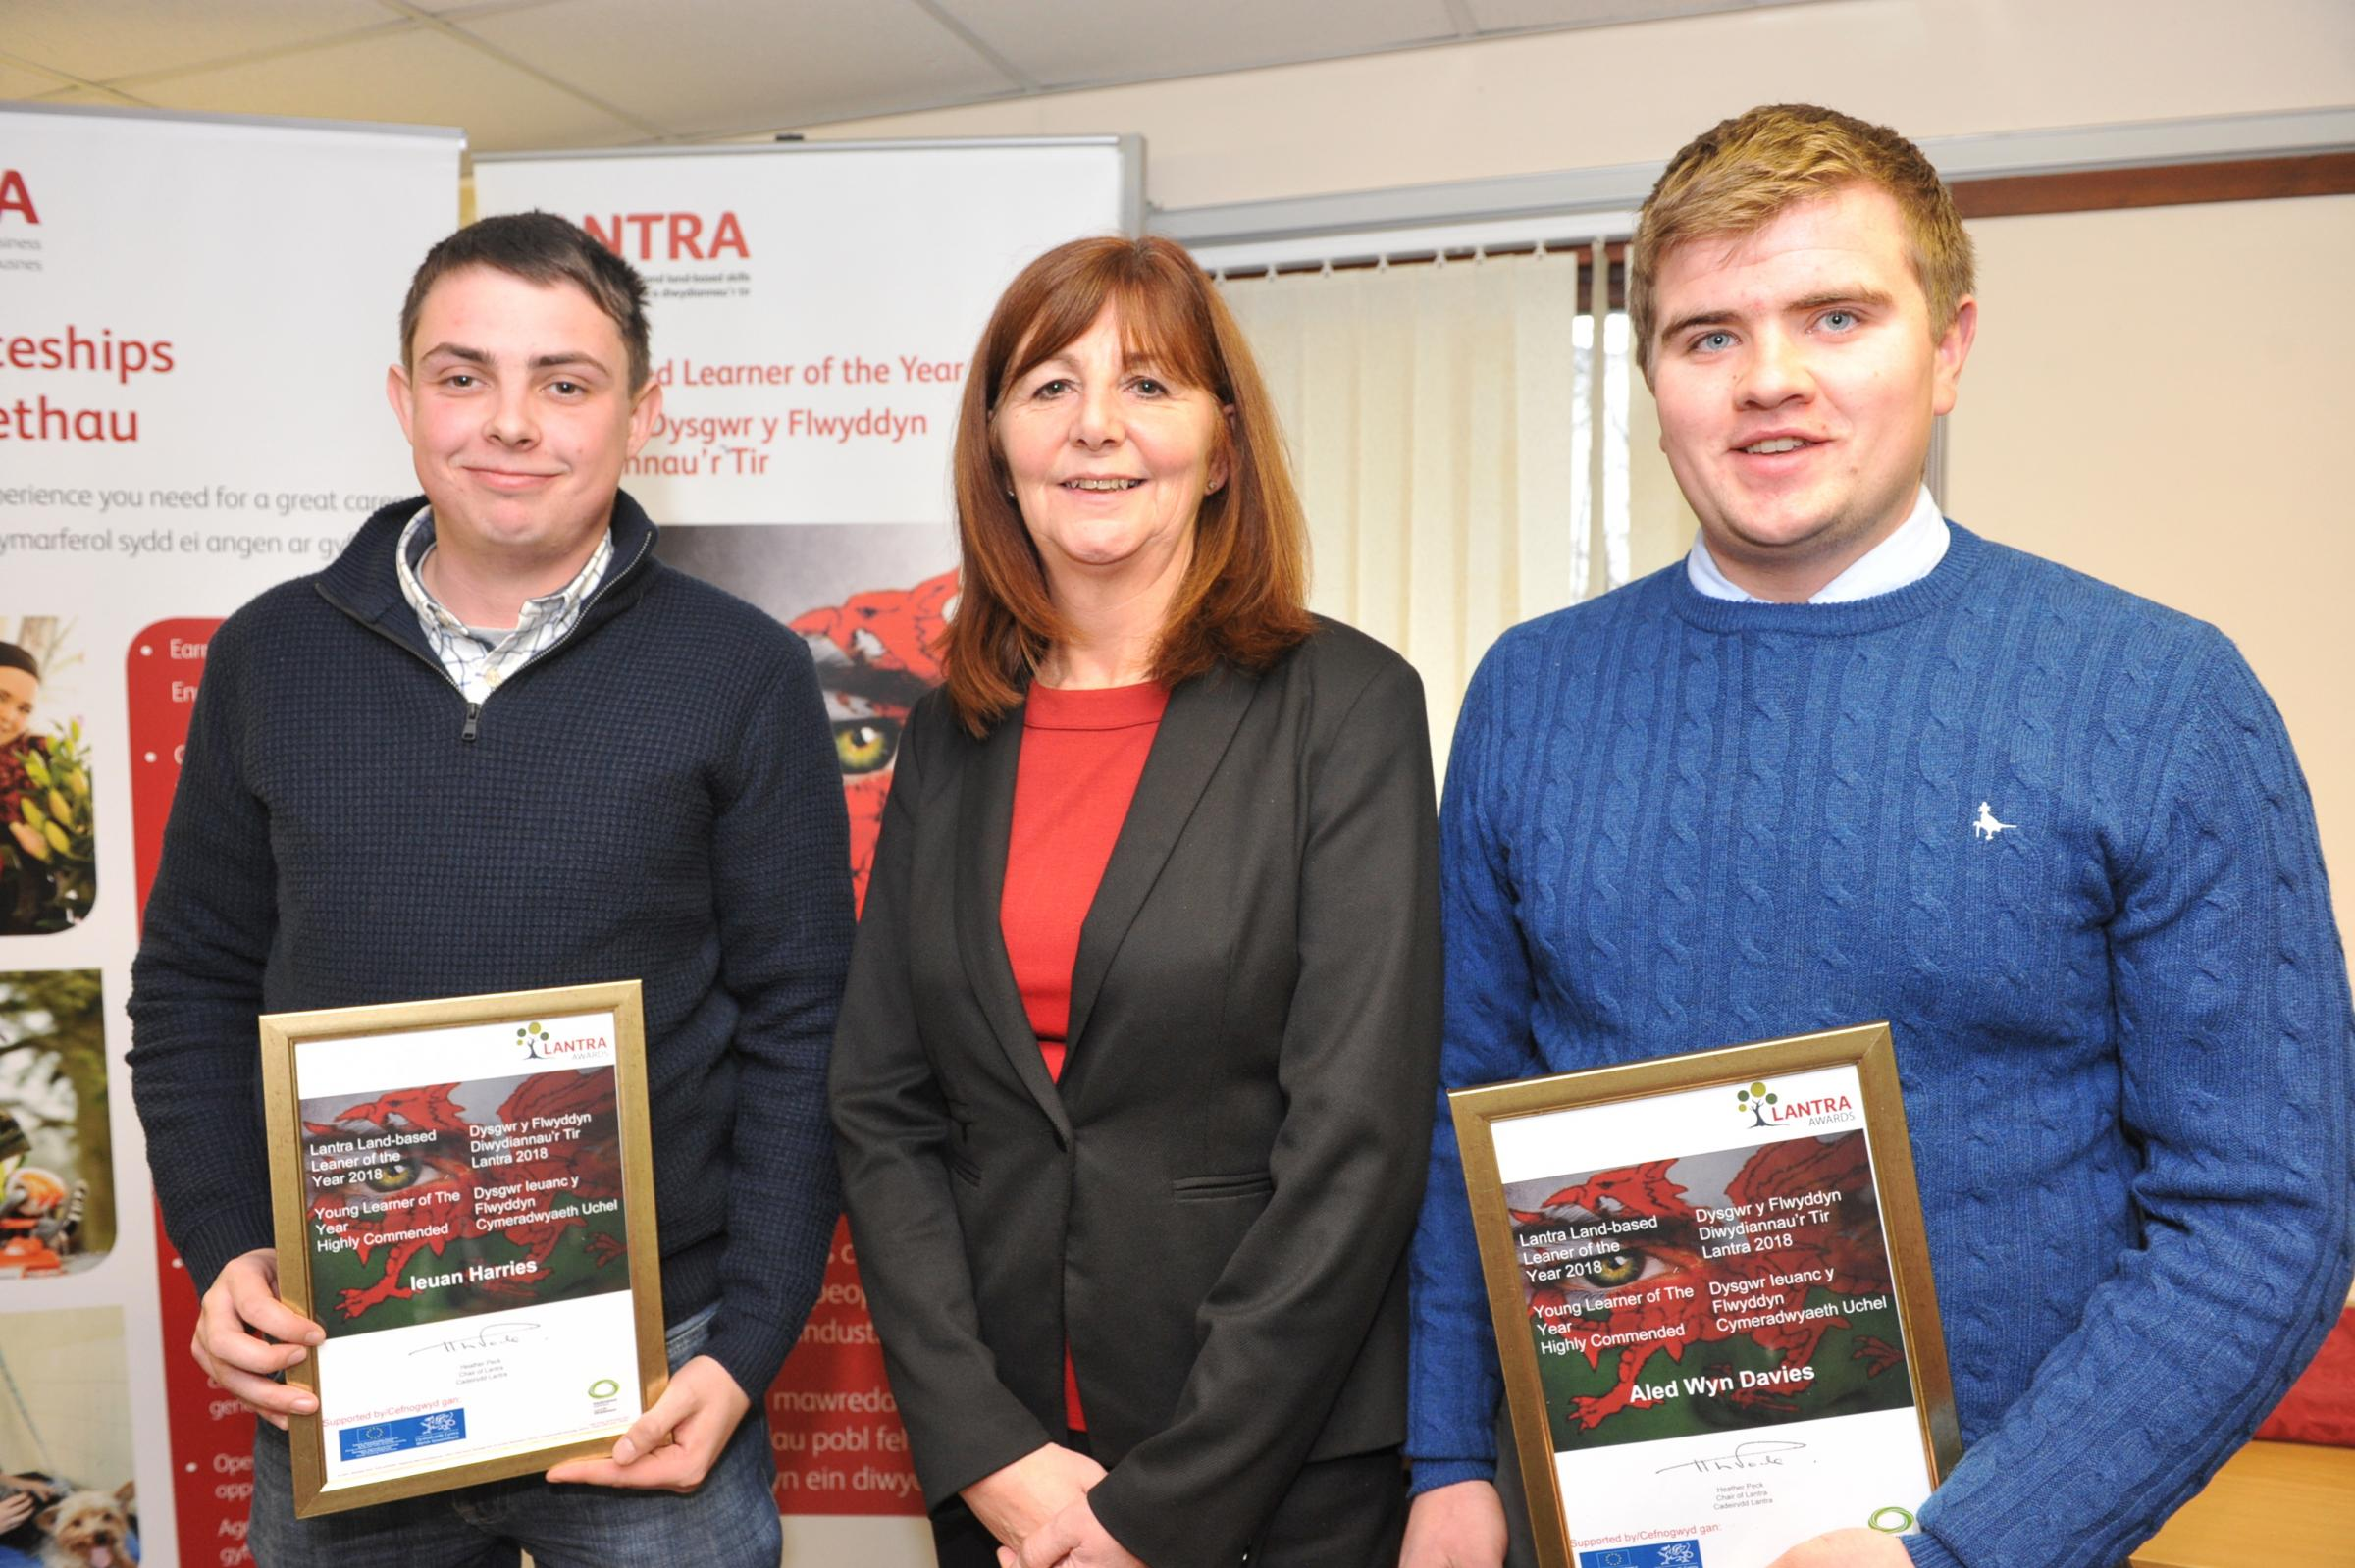 Lantra winner Ieuan Harries and Aled Wyn Davies with Lesley Griffiths